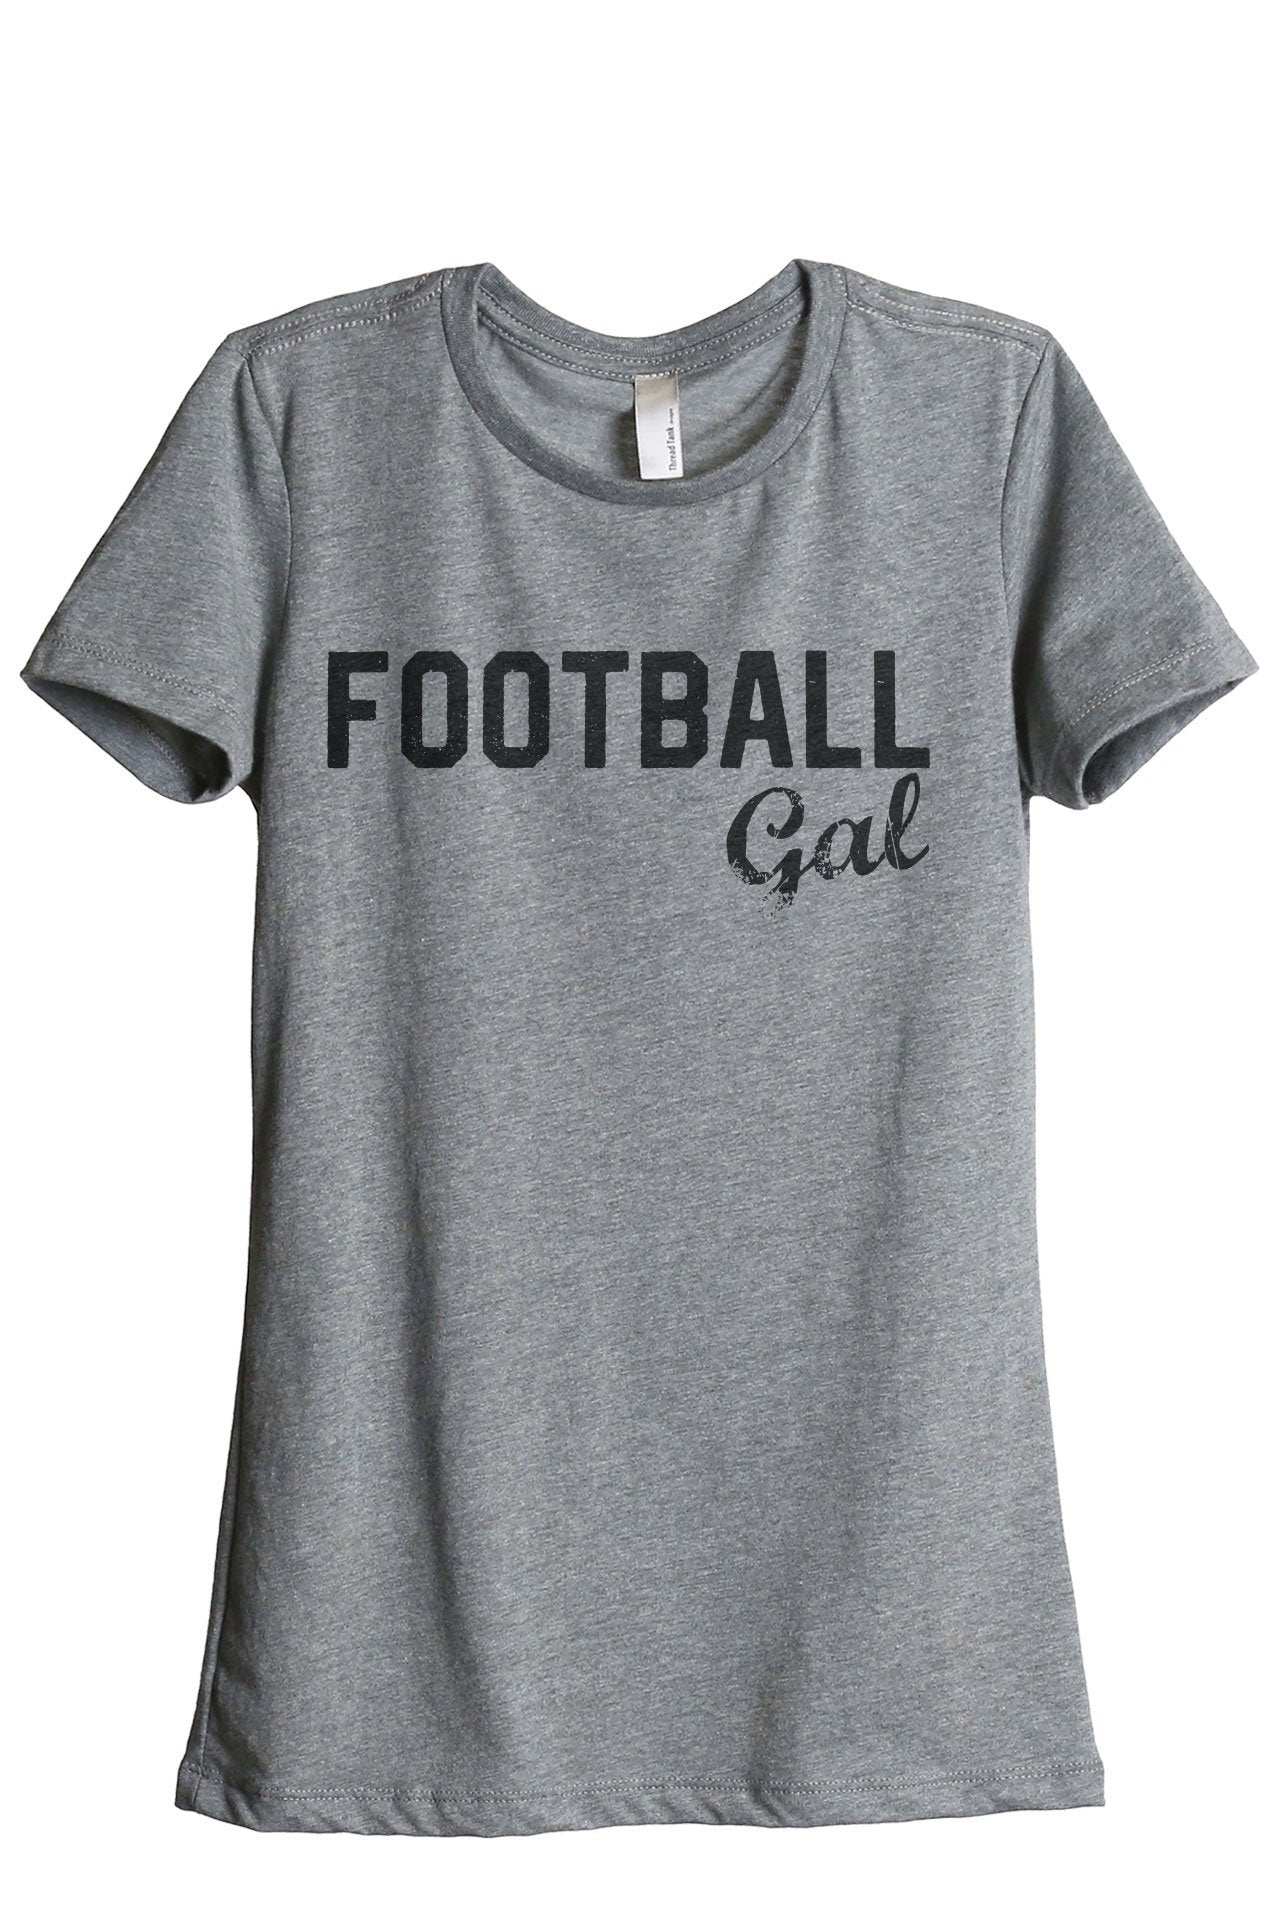 Football Gal Women's Relaxed Crewneck T-Shirt Top Tee Heather Grey